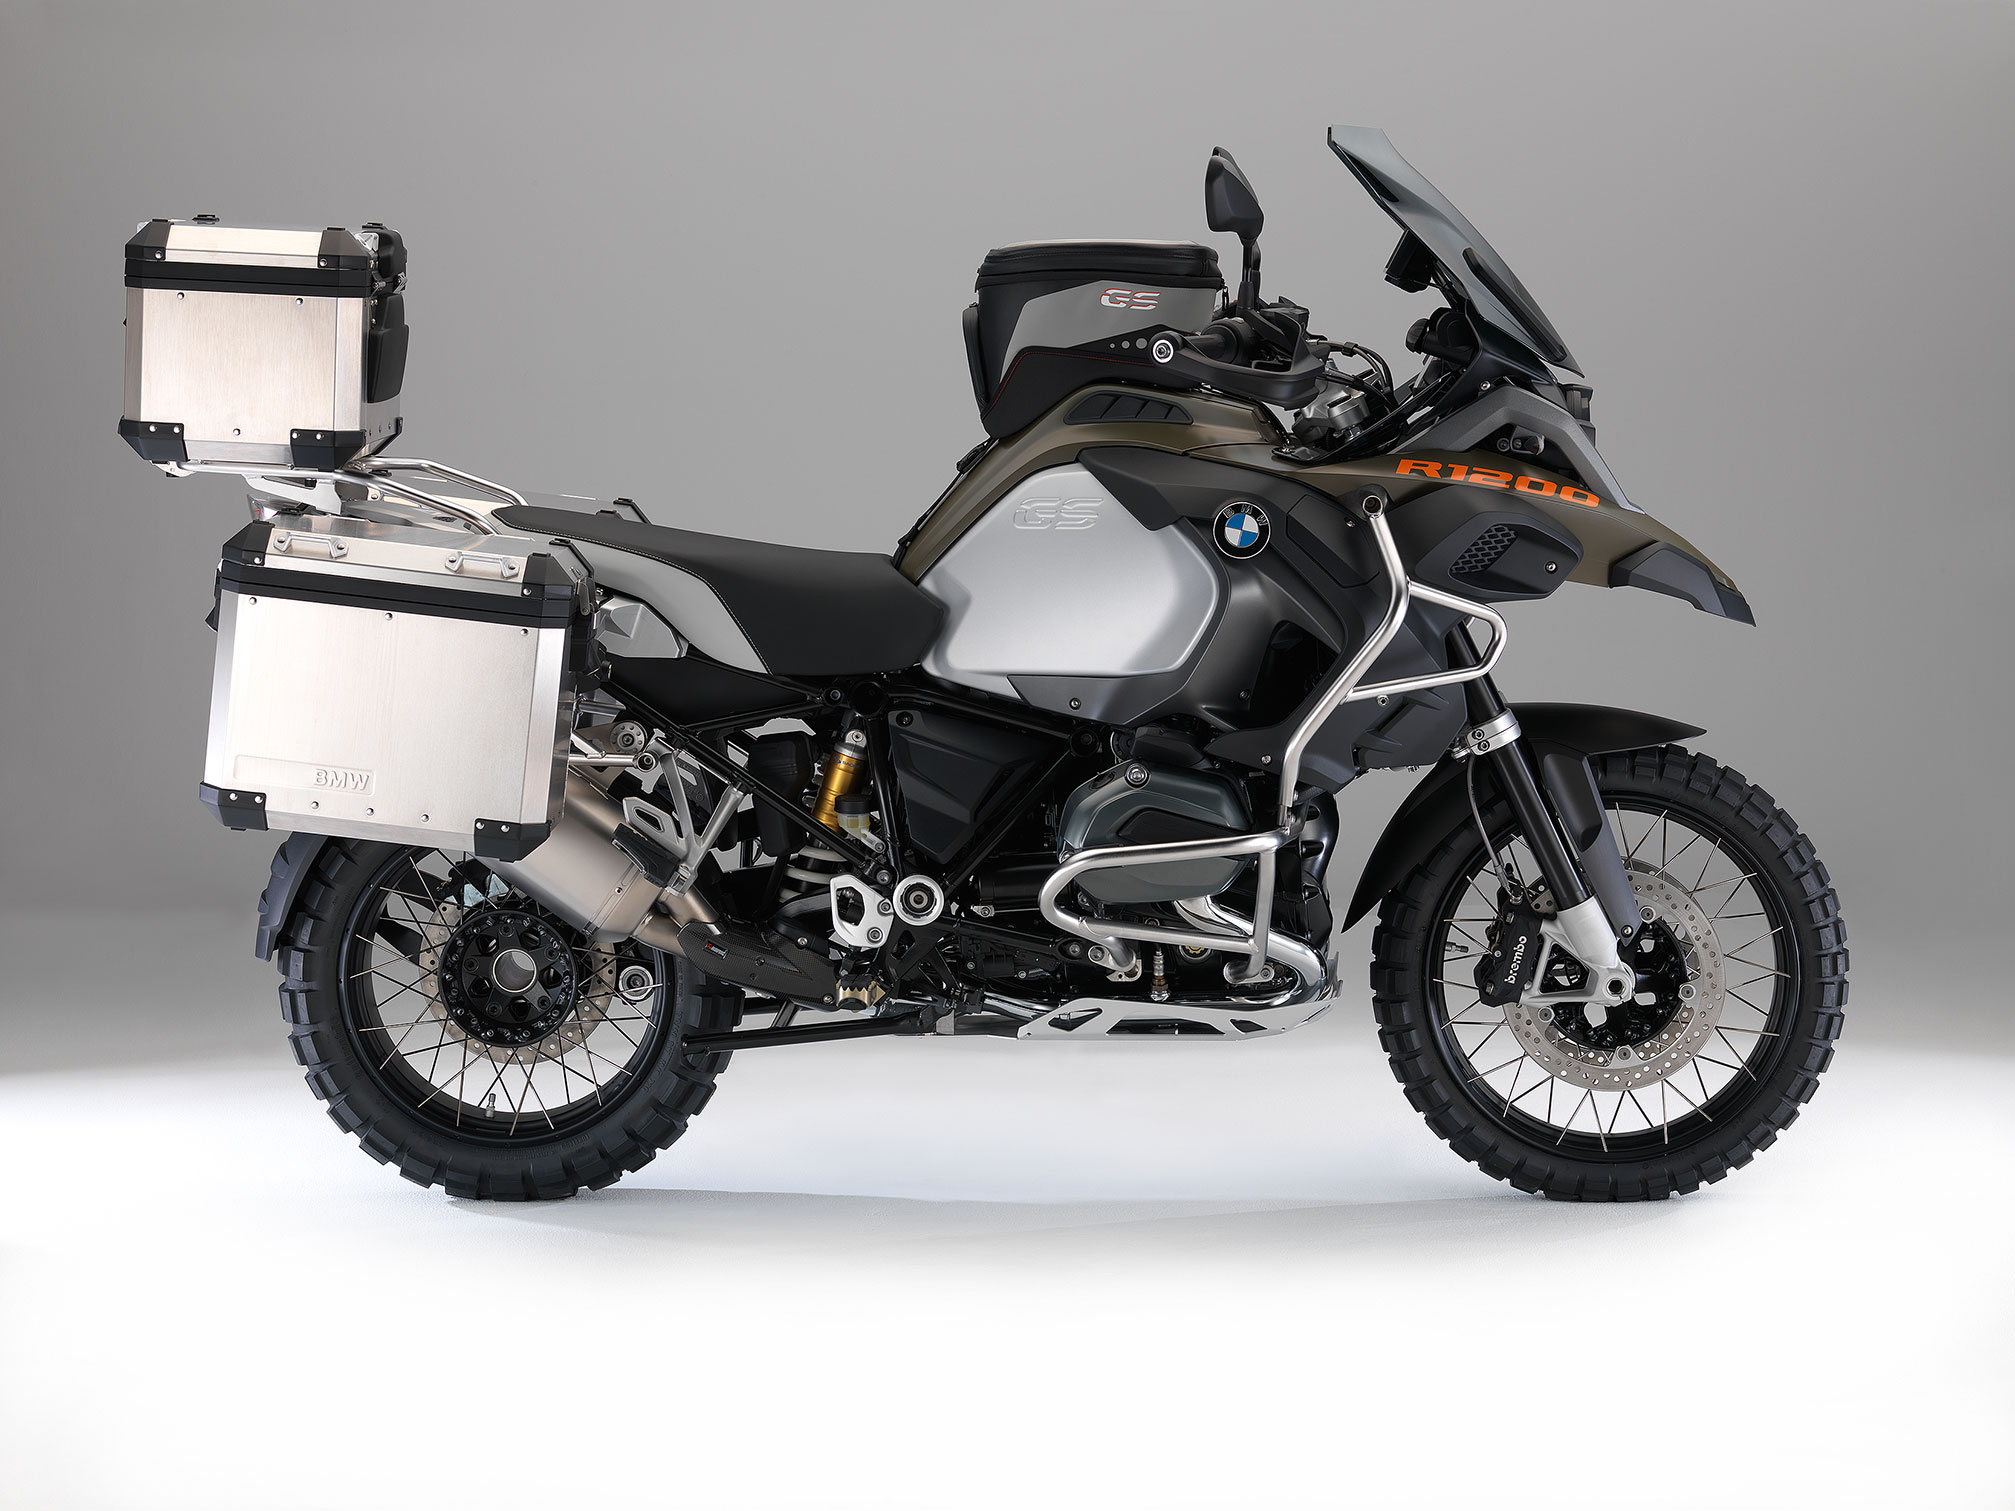 bmw r 1200 gs adventure specs 2014 2015 autoevolution. Black Bedroom Furniture Sets. Home Design Ideas